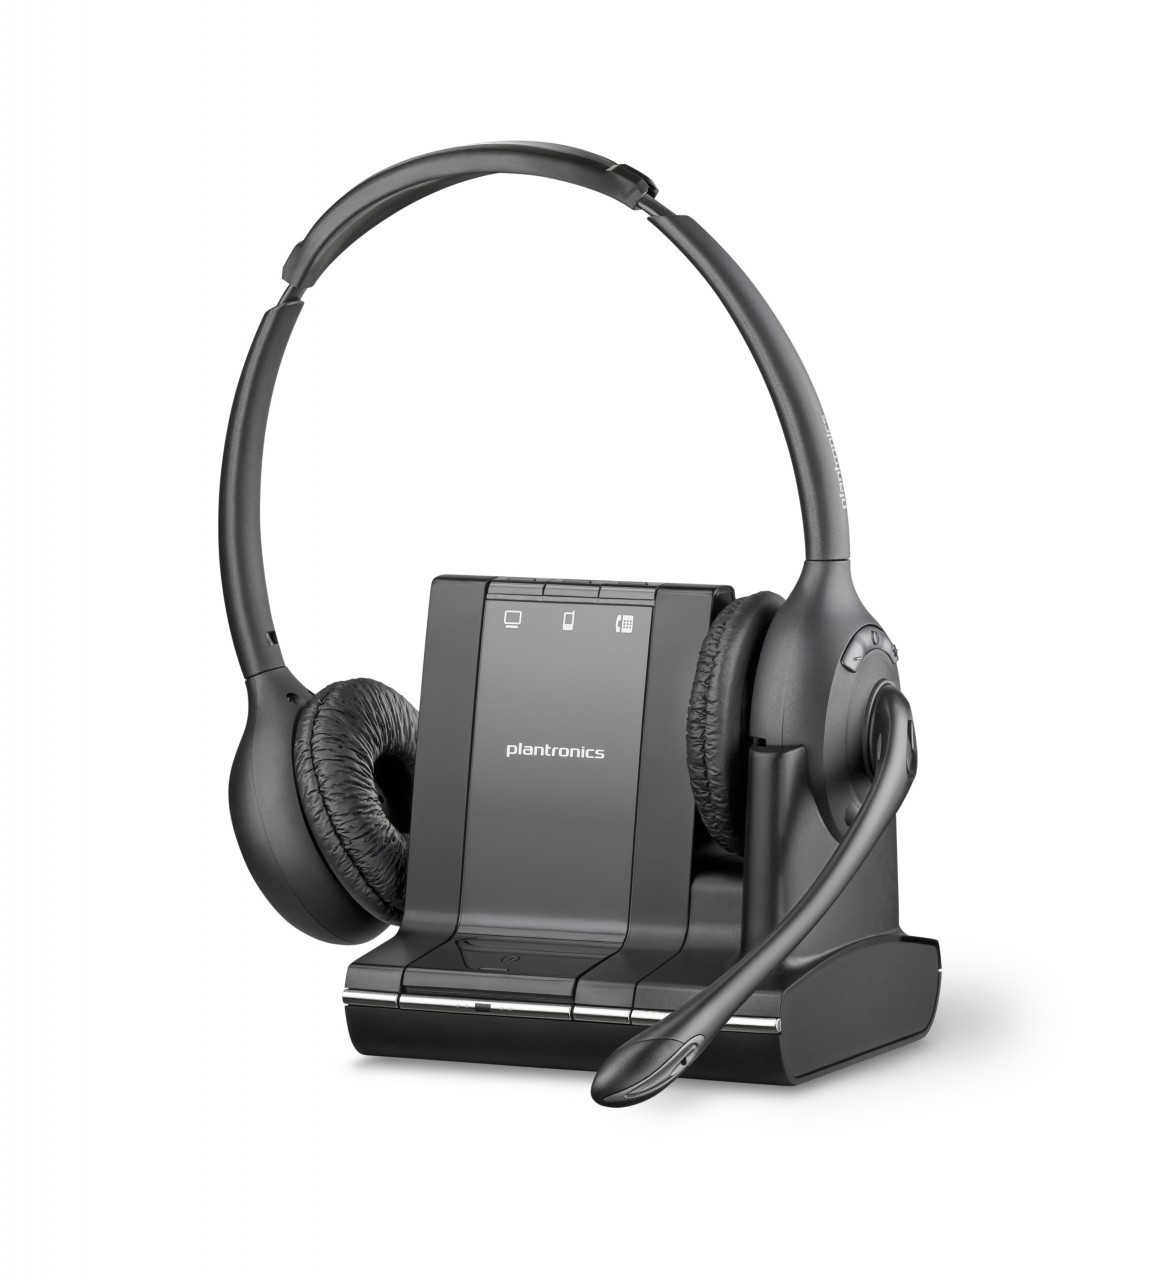 Plantronics Savi W720 83544 01 Multi Use Wireless Headset Smartphone Ipad Iphone Android Tablet And Desk Phone Savi Plantronics Wireless Savi 740 Savi 700 Seires